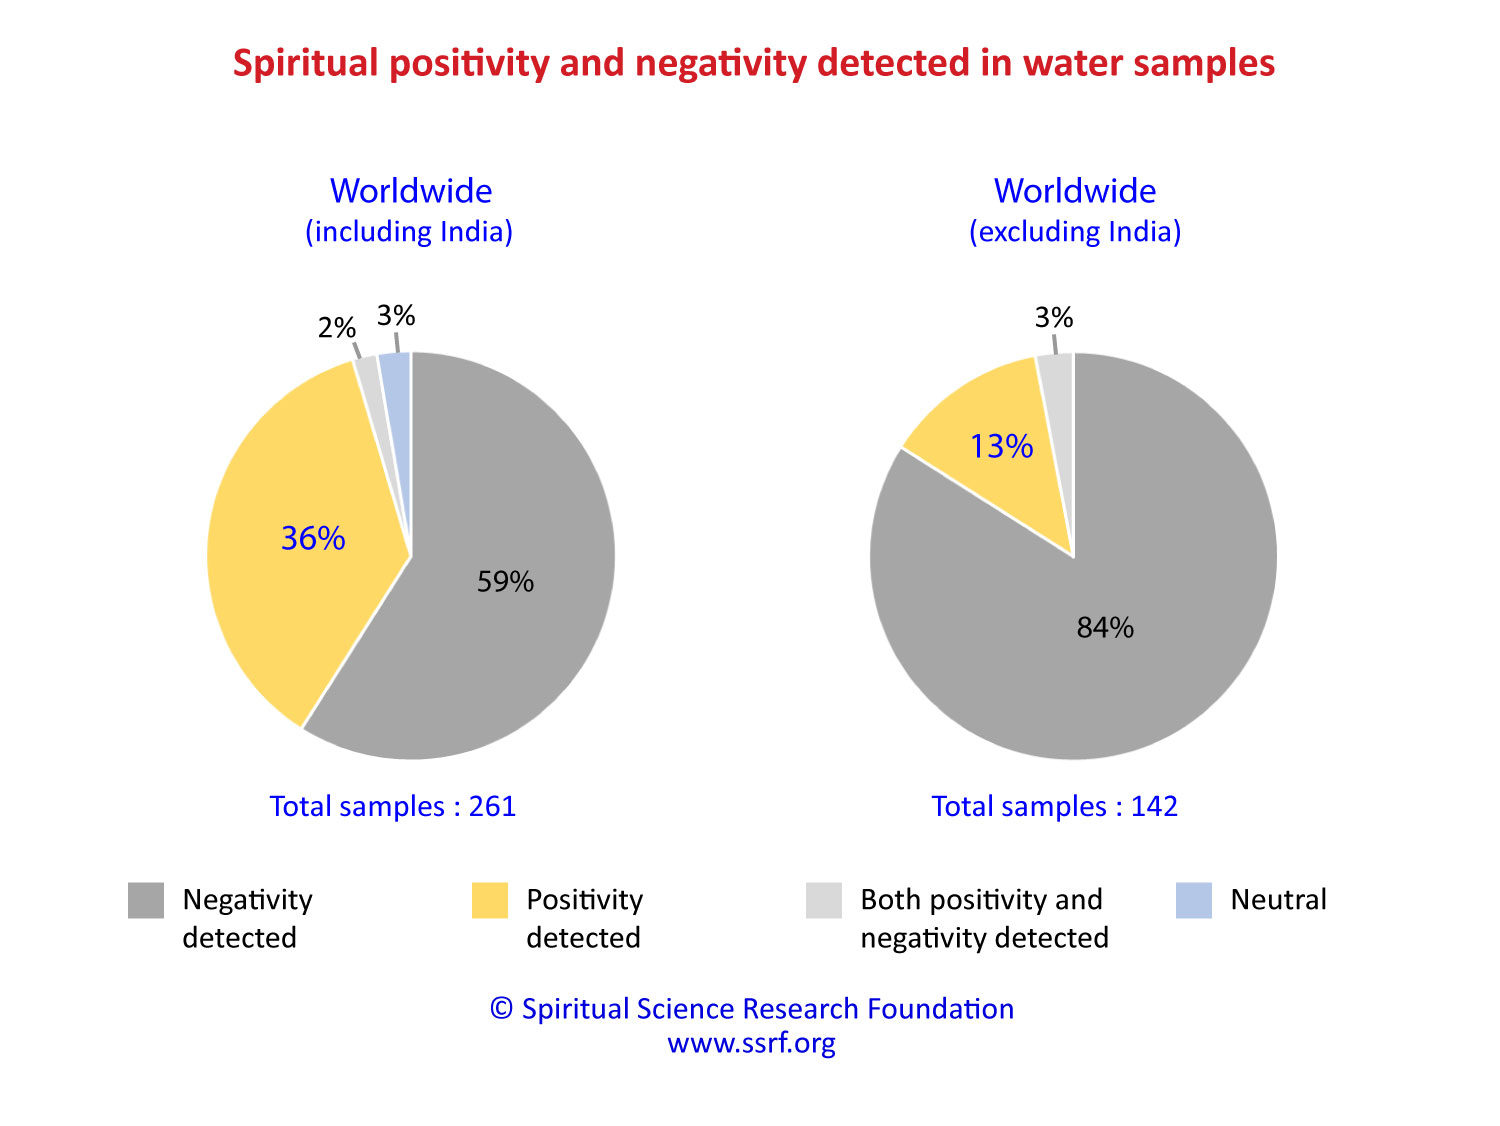 Spiritual positivity and spiritual negativity in water samples